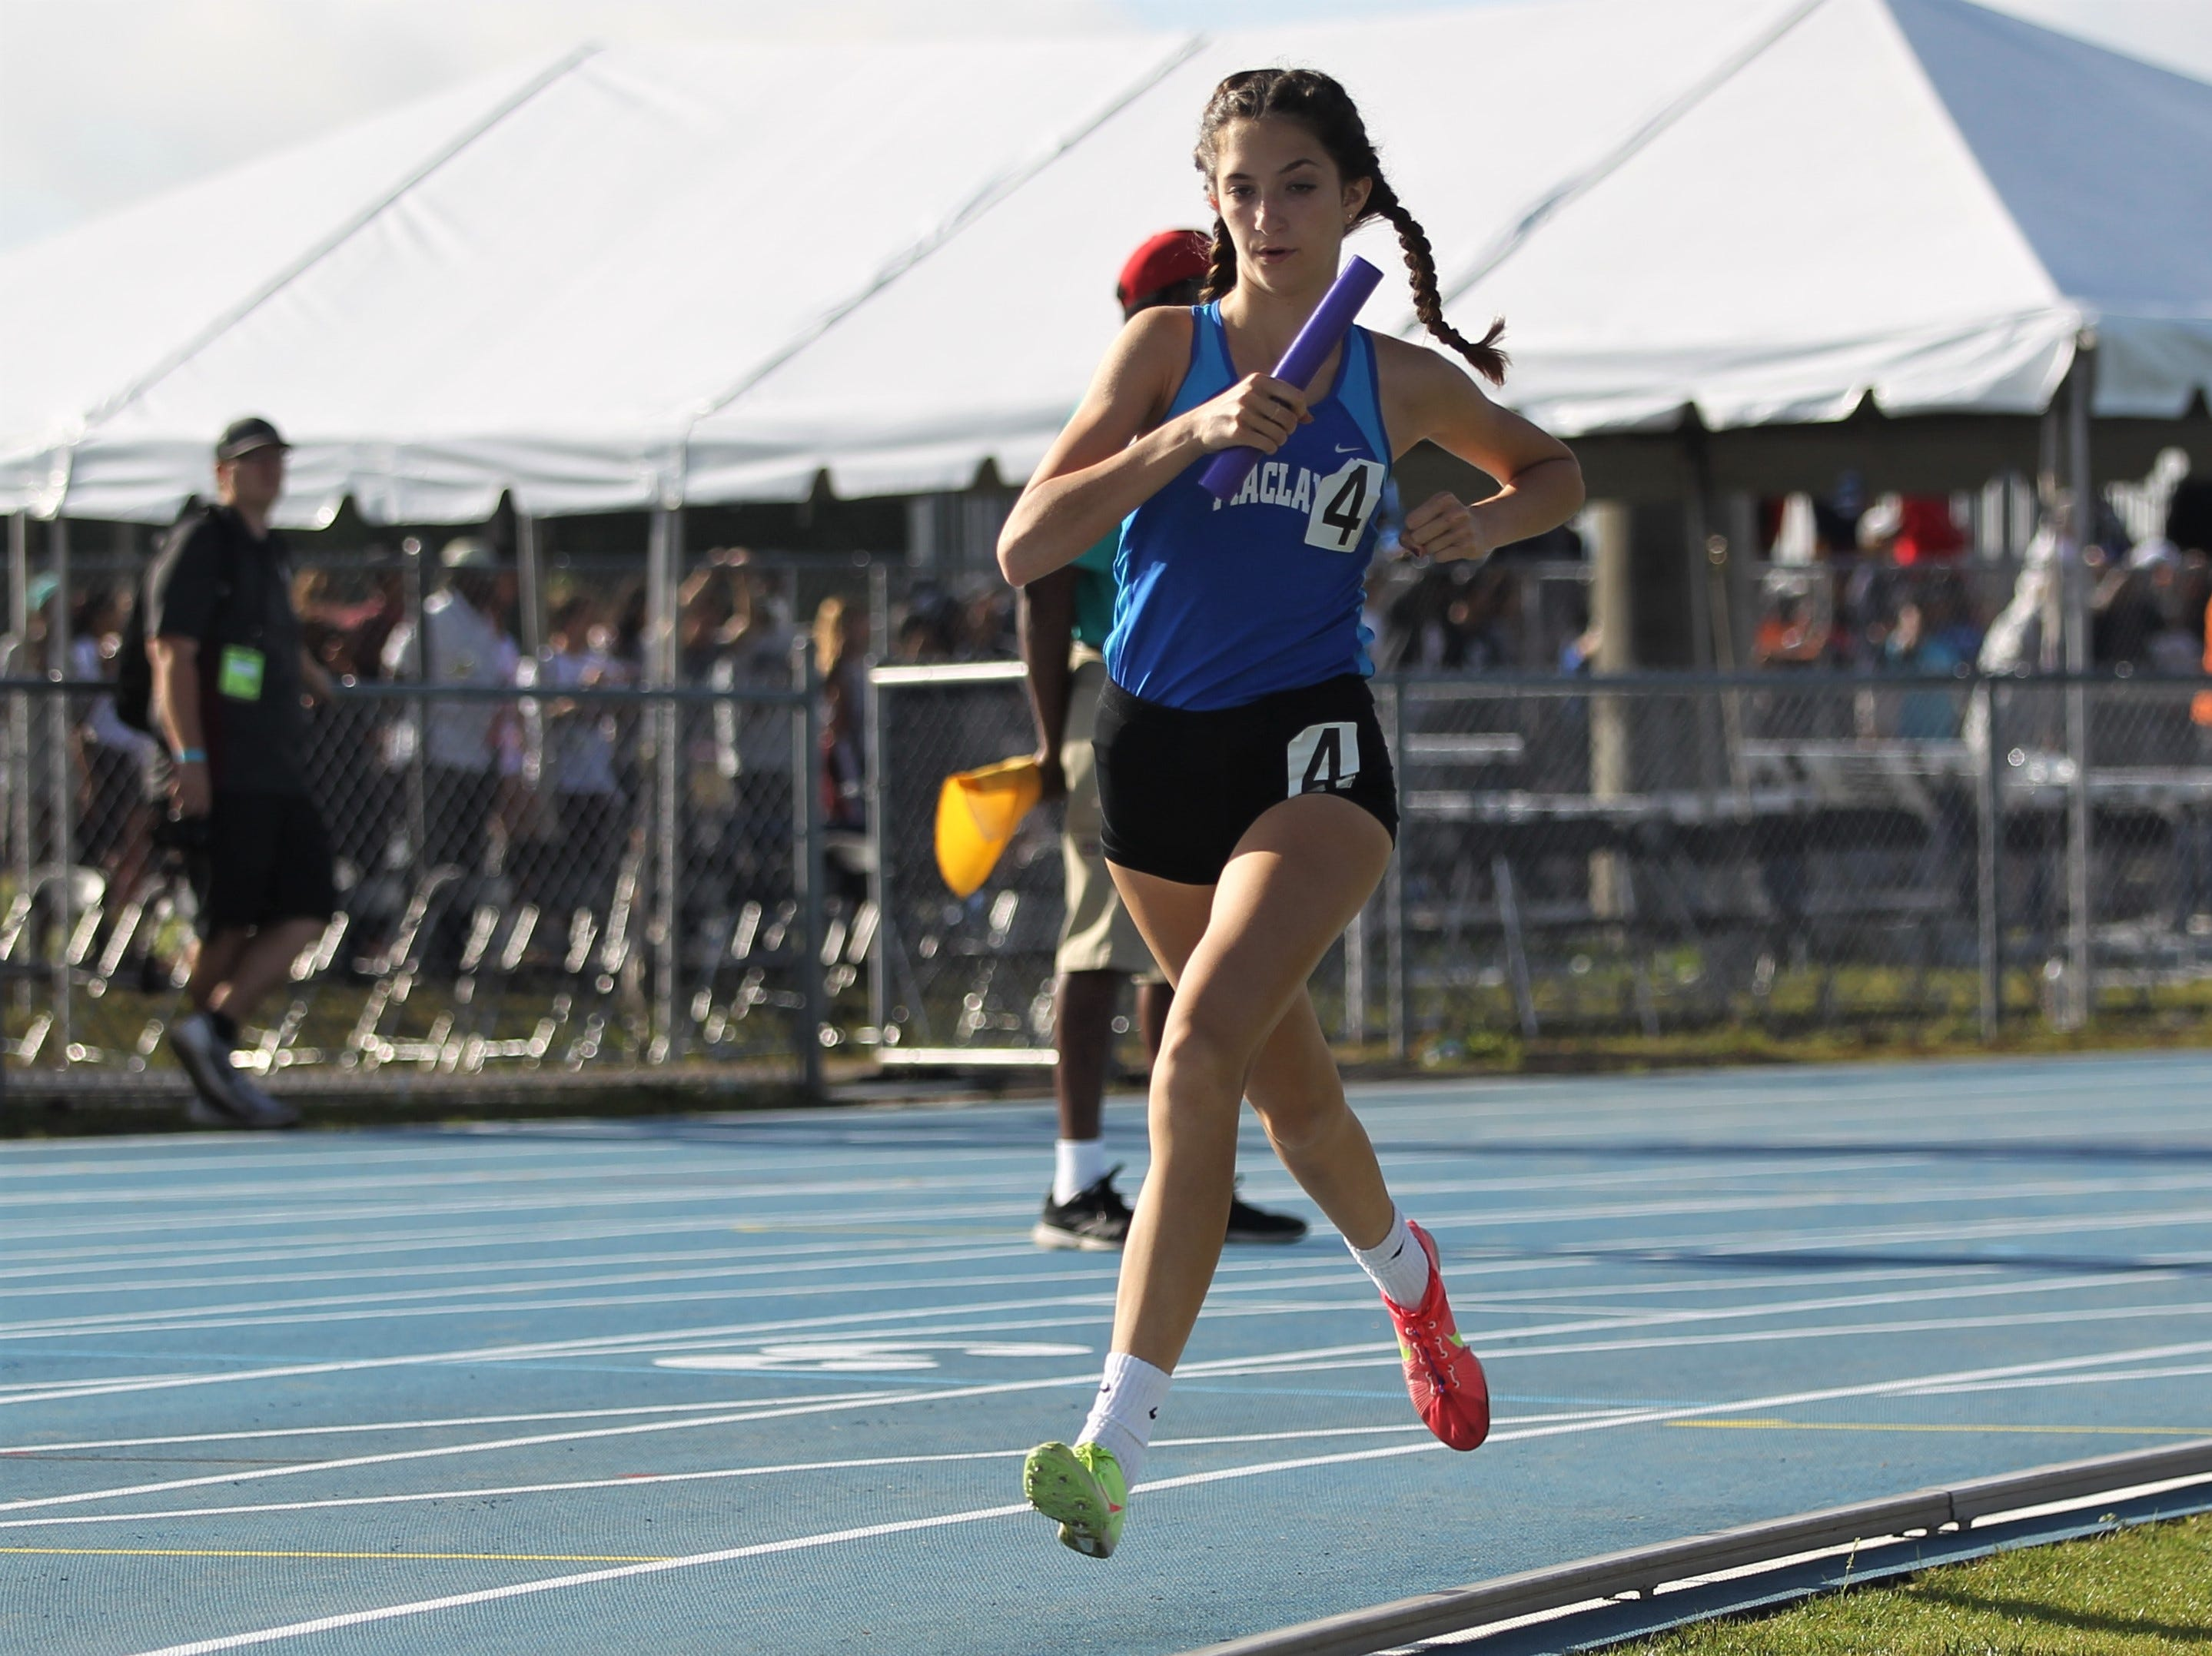 Maclay eighth-grader Ella Porcher urns a 4x800 leg during the FHSAA Track and Field State Championships at UNF's Hodges Stadium in Jacksonville on May 4, 2019.